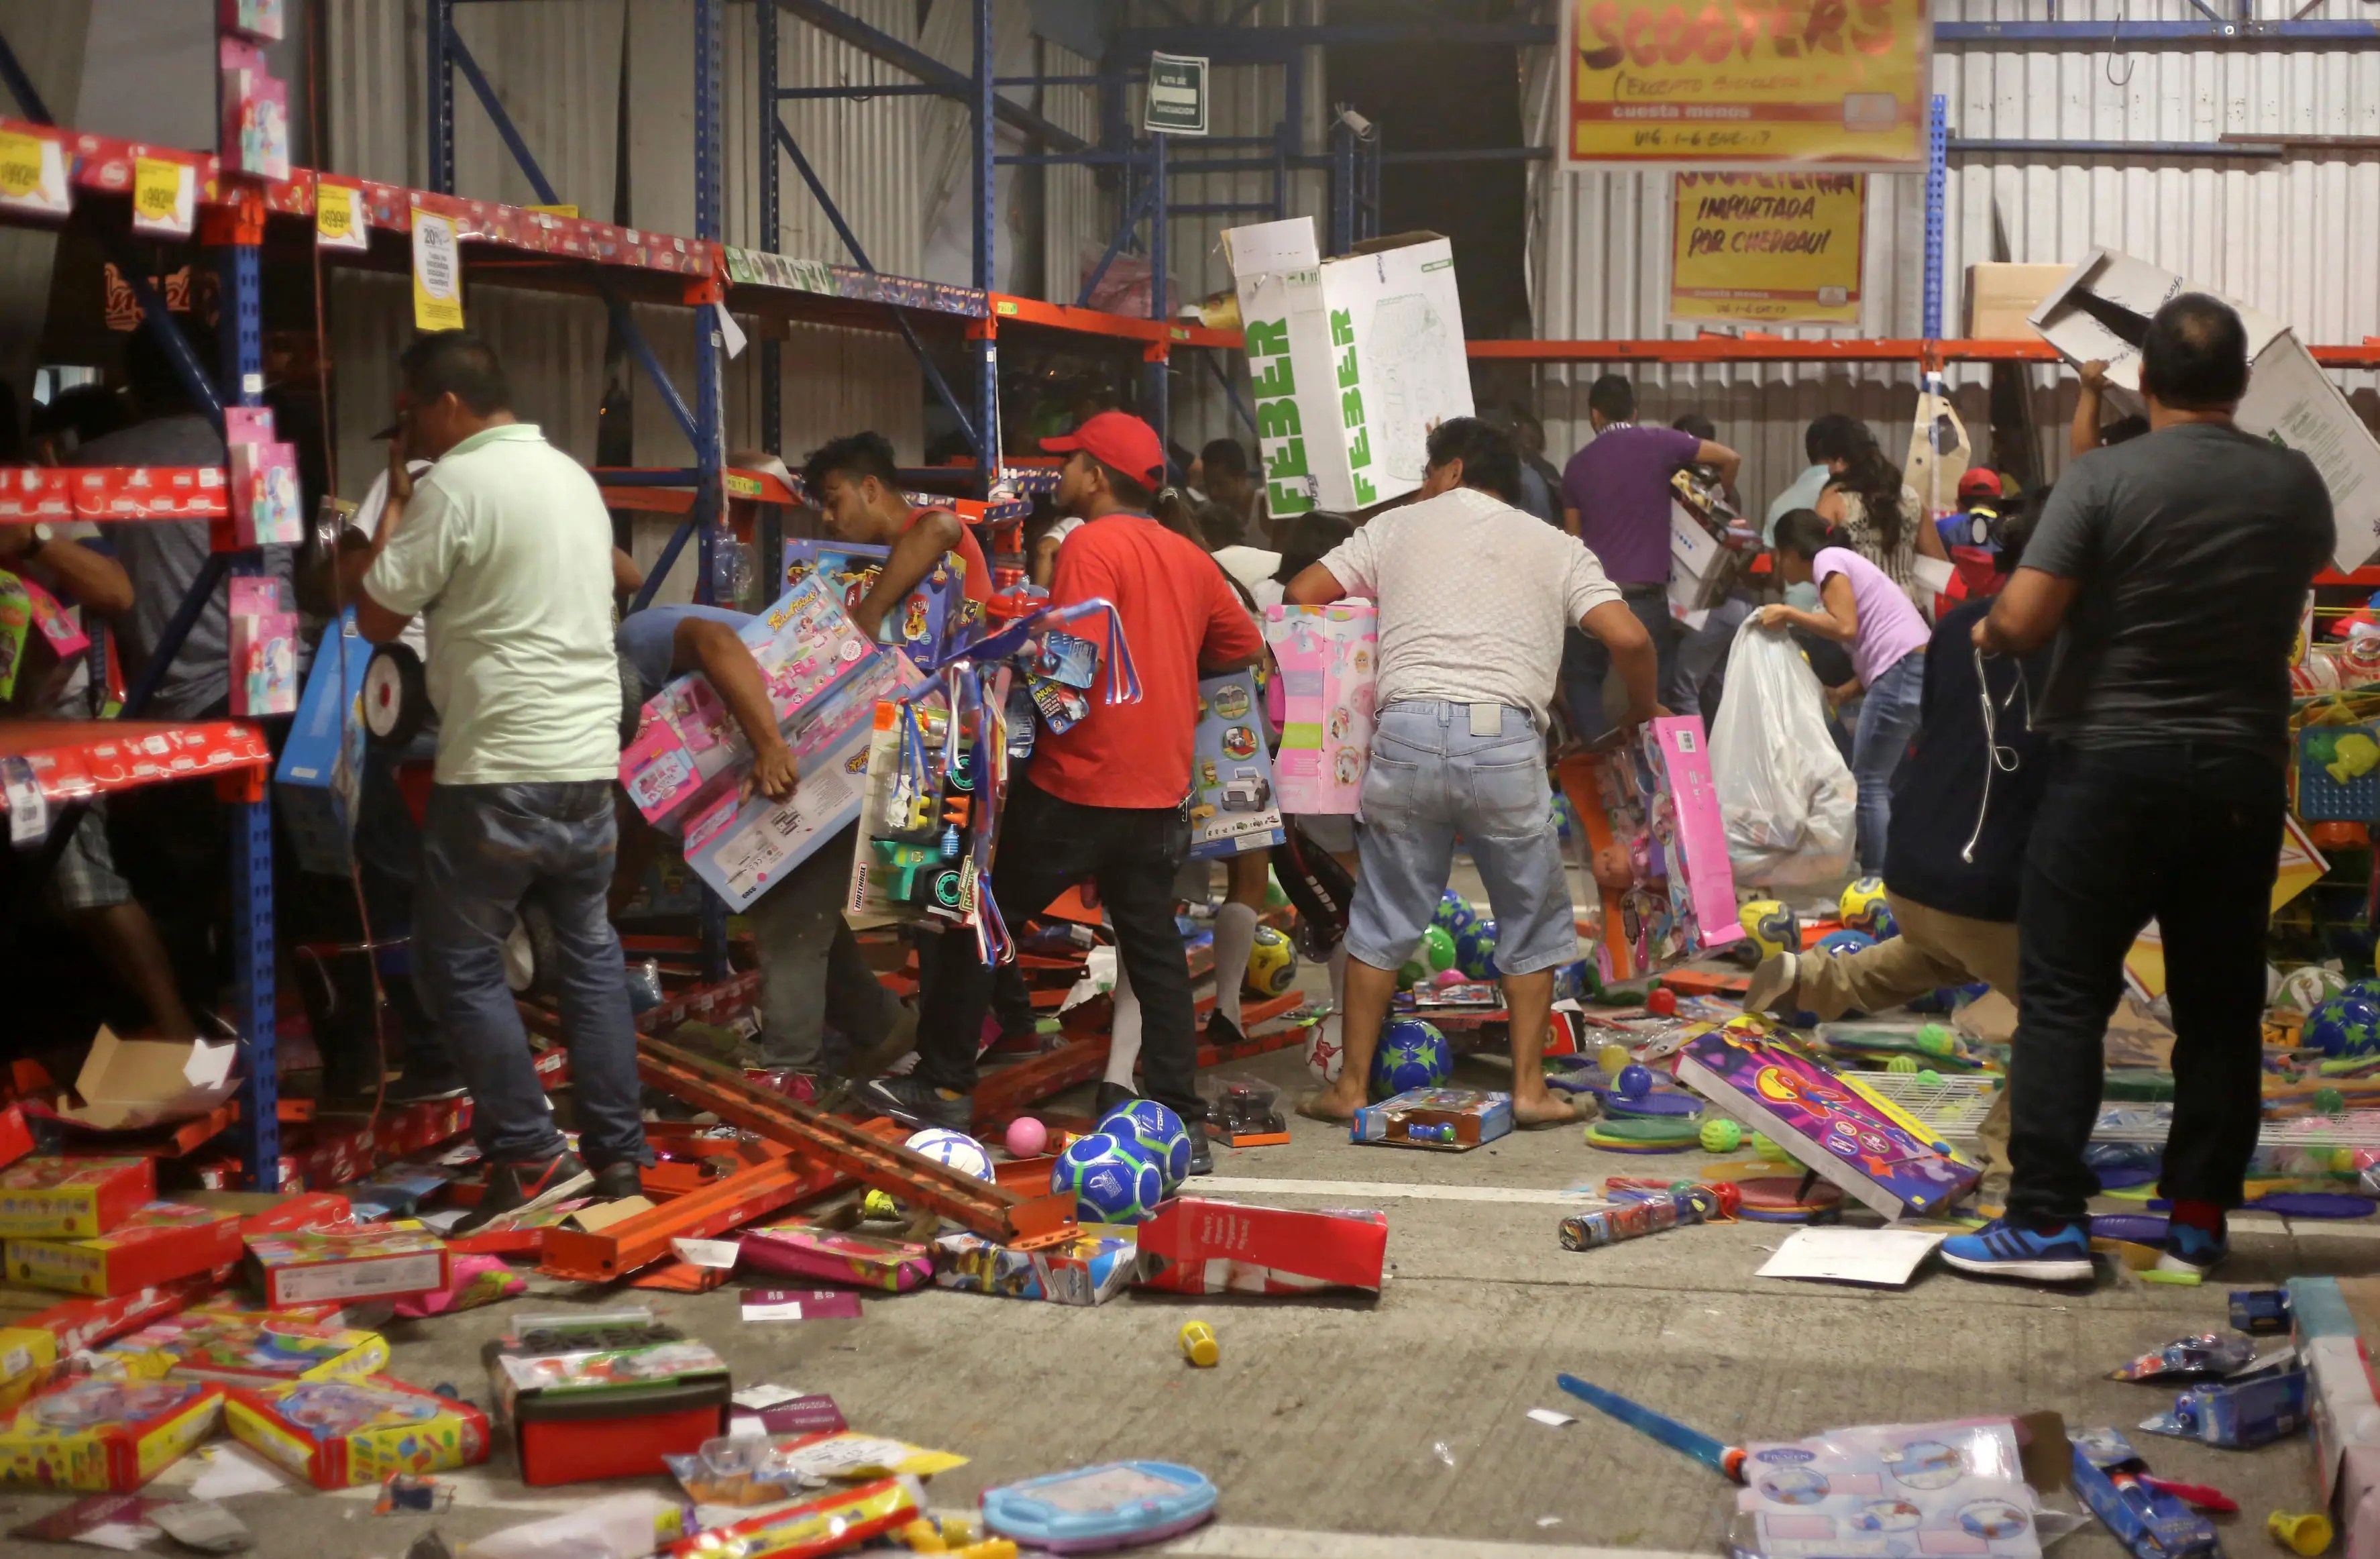 Mexico gas fuel price increase protest looting stores violence